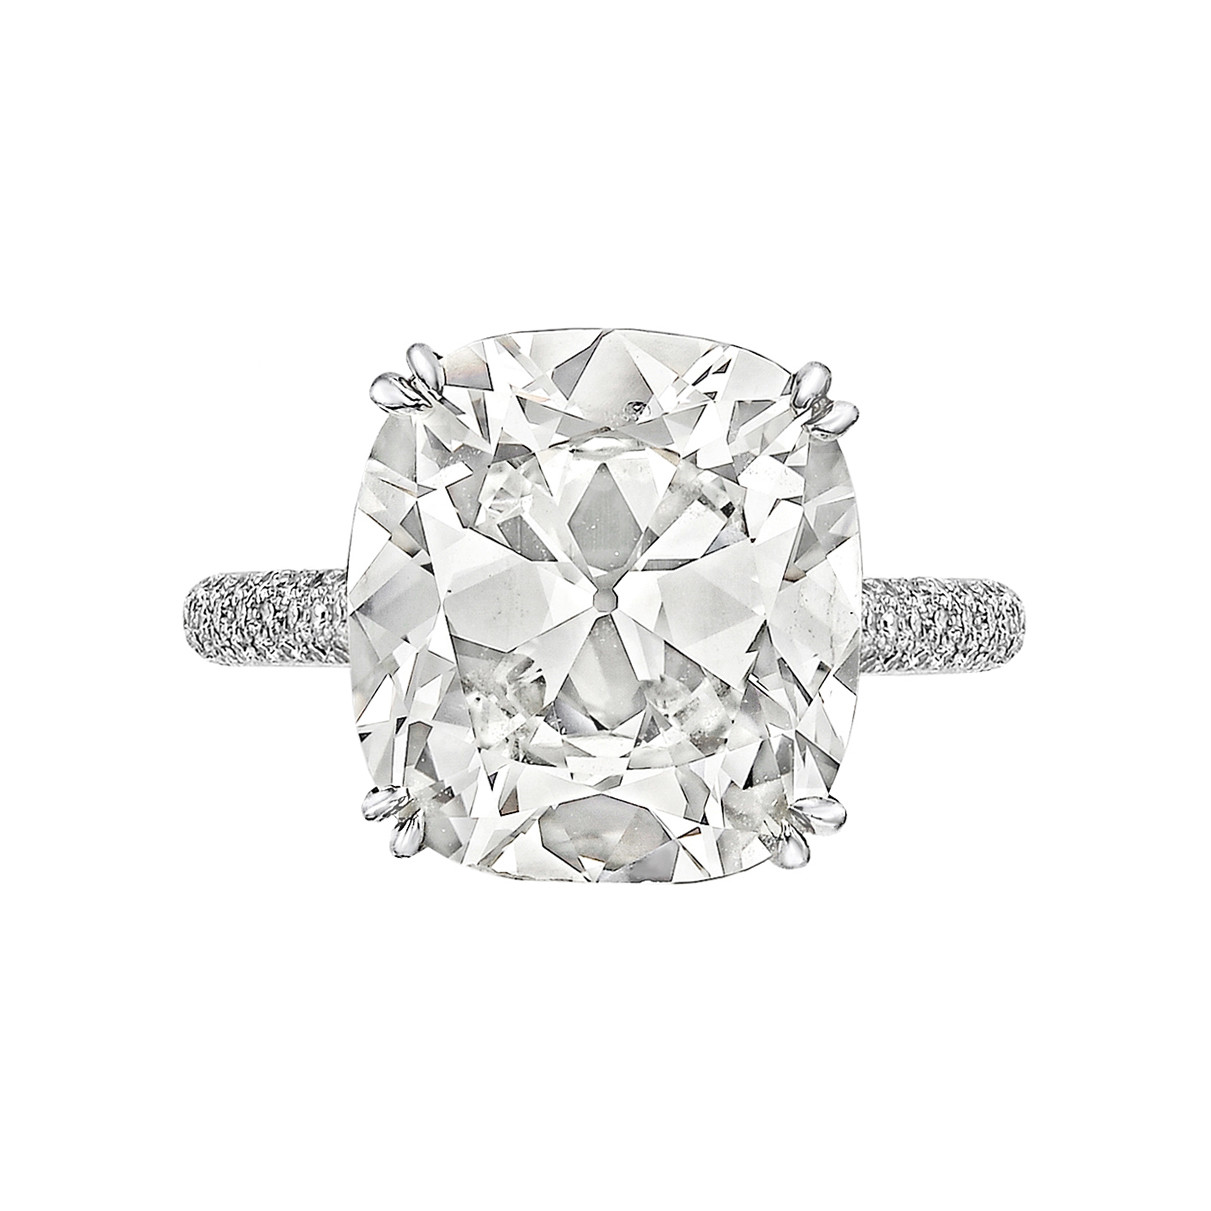 6.06ct Cushion-Cut Diamond Ring (I/VVS2)